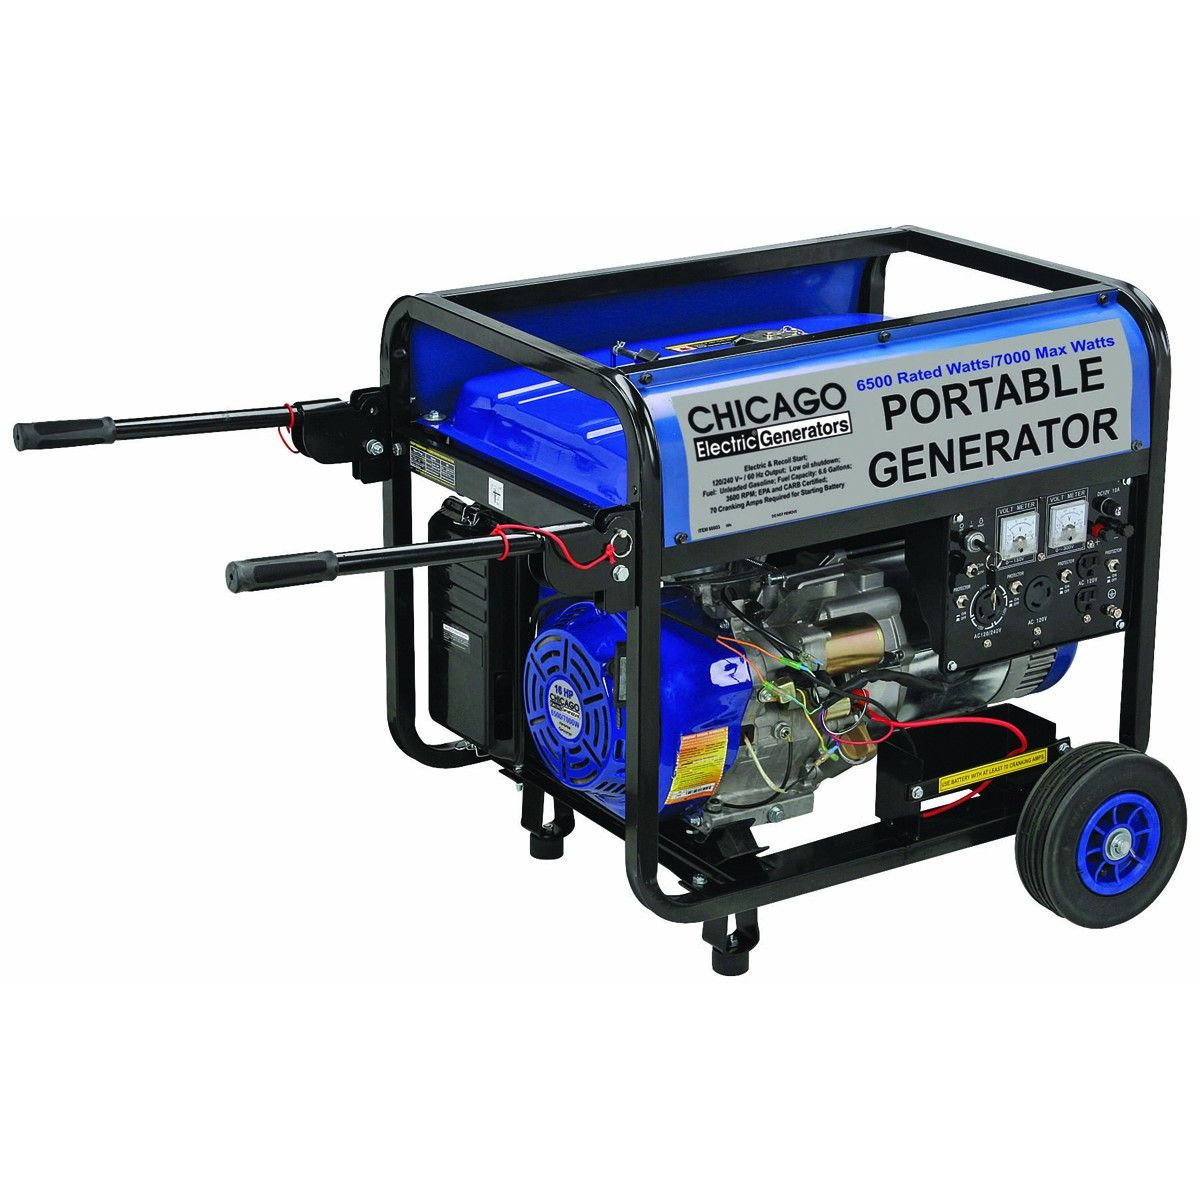 medium resolution of chicago electric generators 66603 16 hp 6500 rated watts 7000 max watts portable generator carb